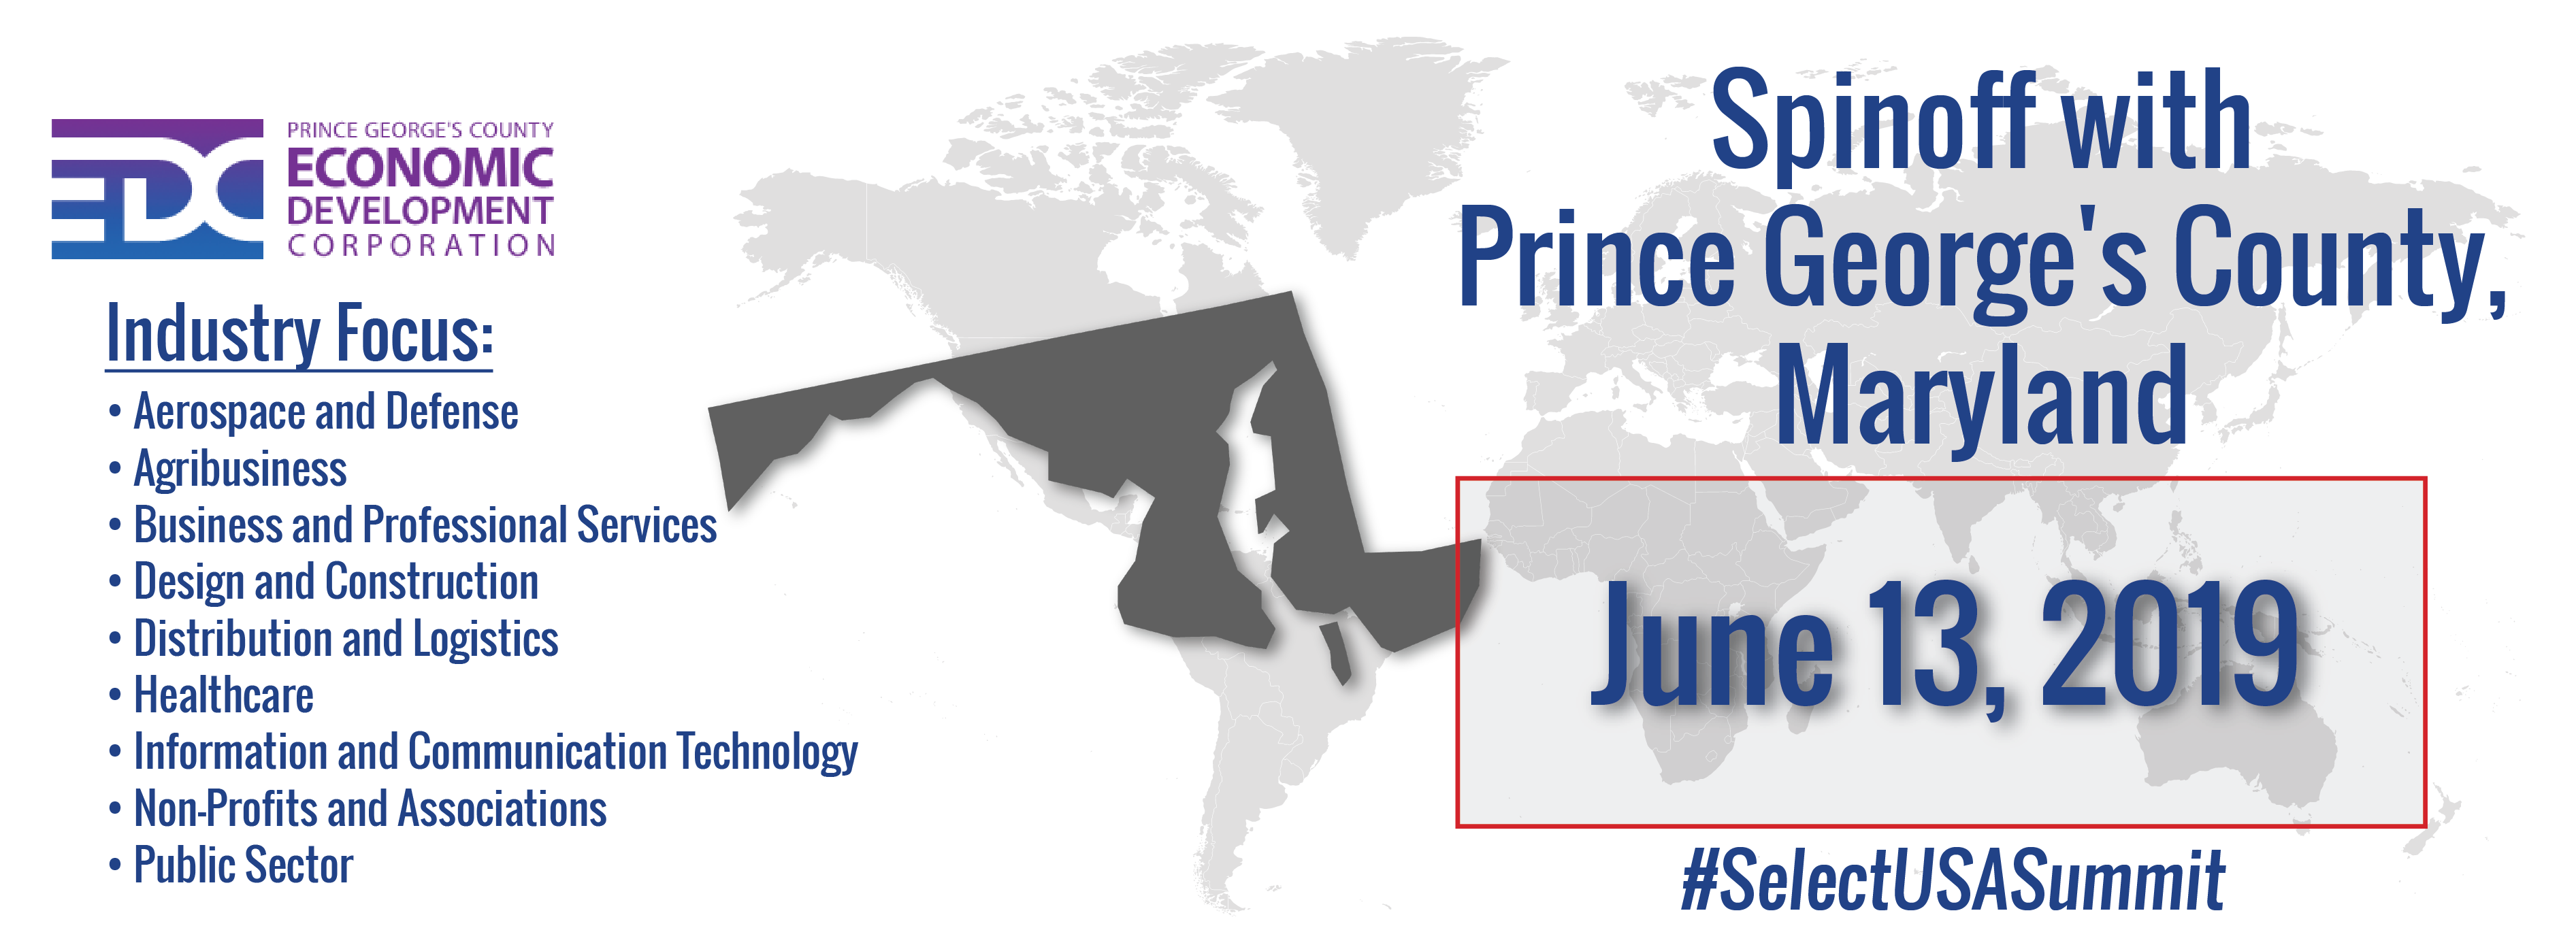 Spinoff Event Graphic - Prince George's County, Maryland